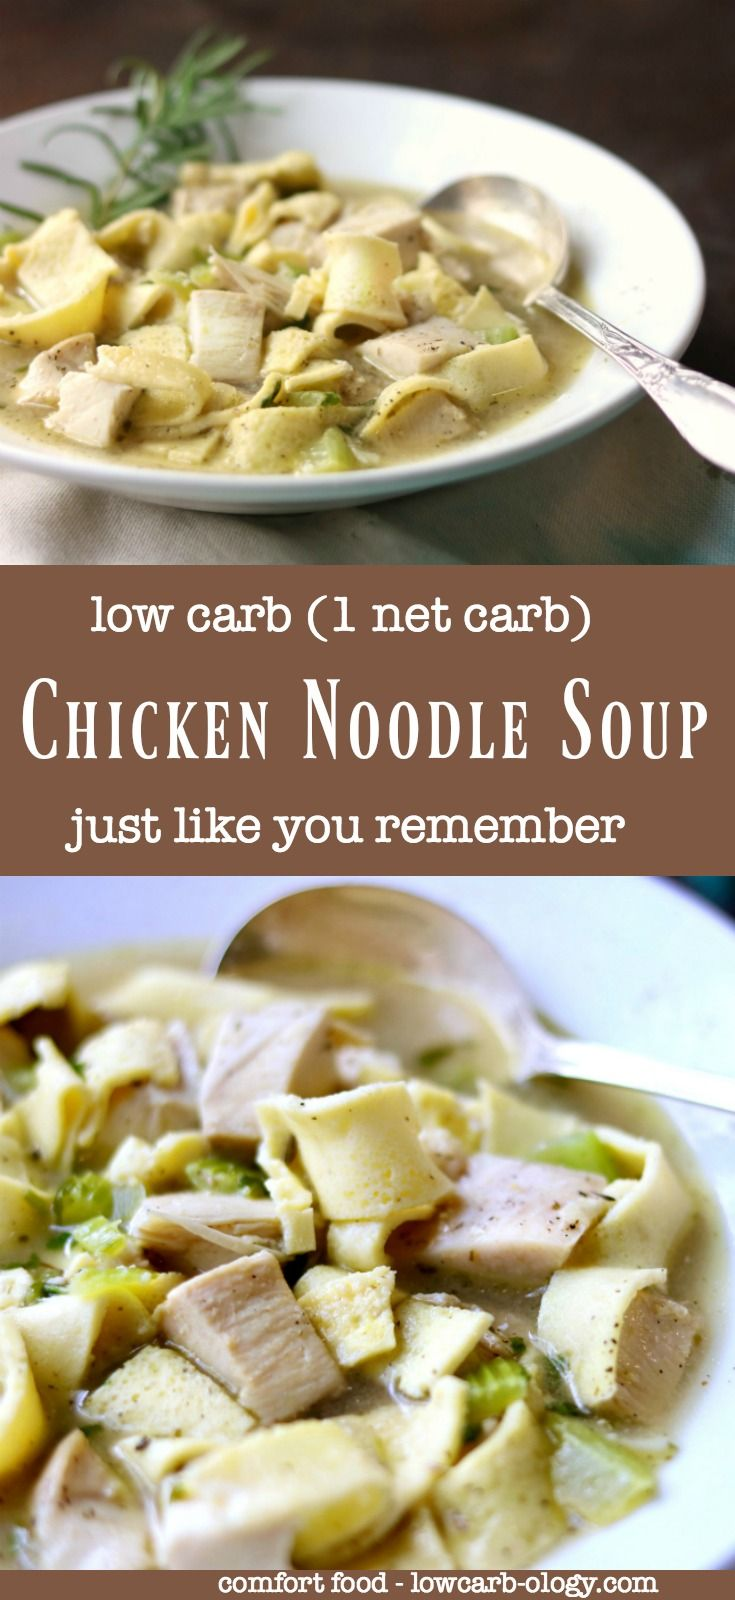 Low carb chicken noodle soup recipe has even got homemade egg noodles.With just 1 net carb per serving you can have this comfort food as often as you'd like. From Lowcarb-ology.com